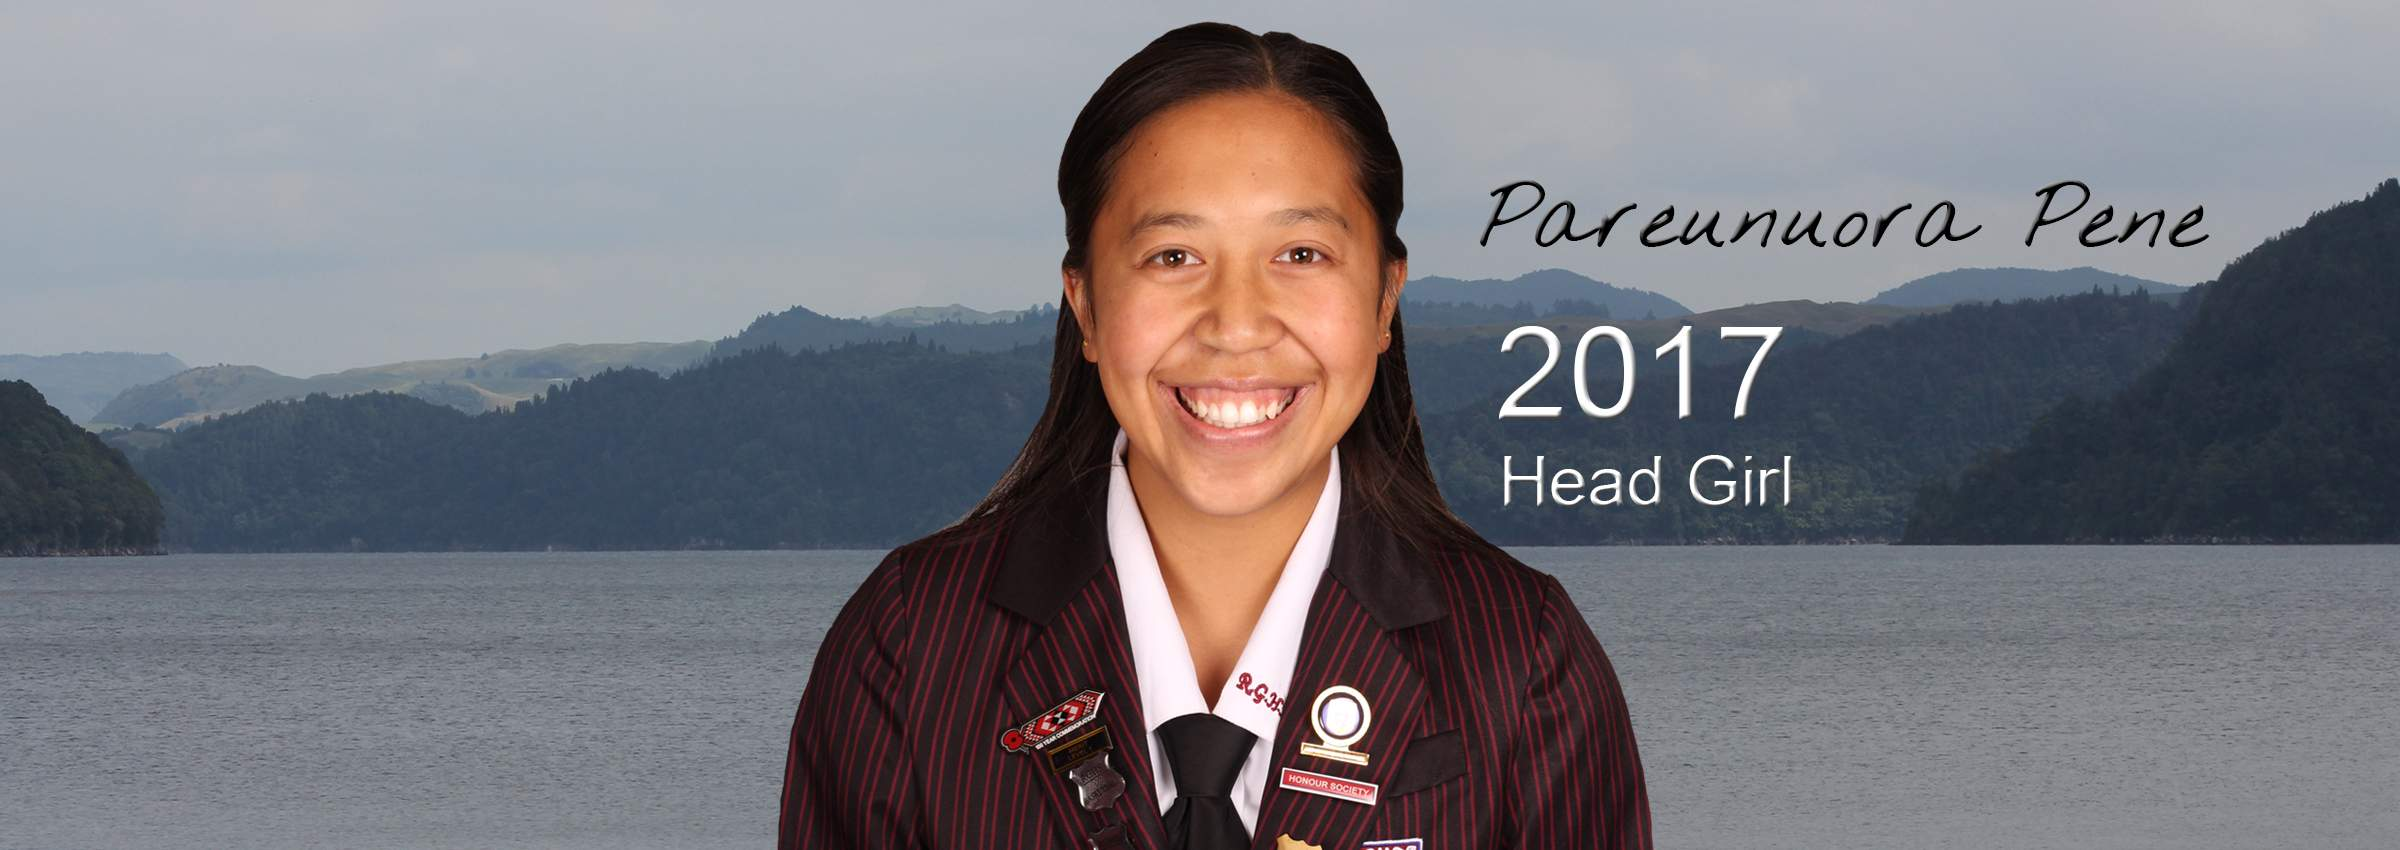 2017 HEAD GIRL BANNER Pare